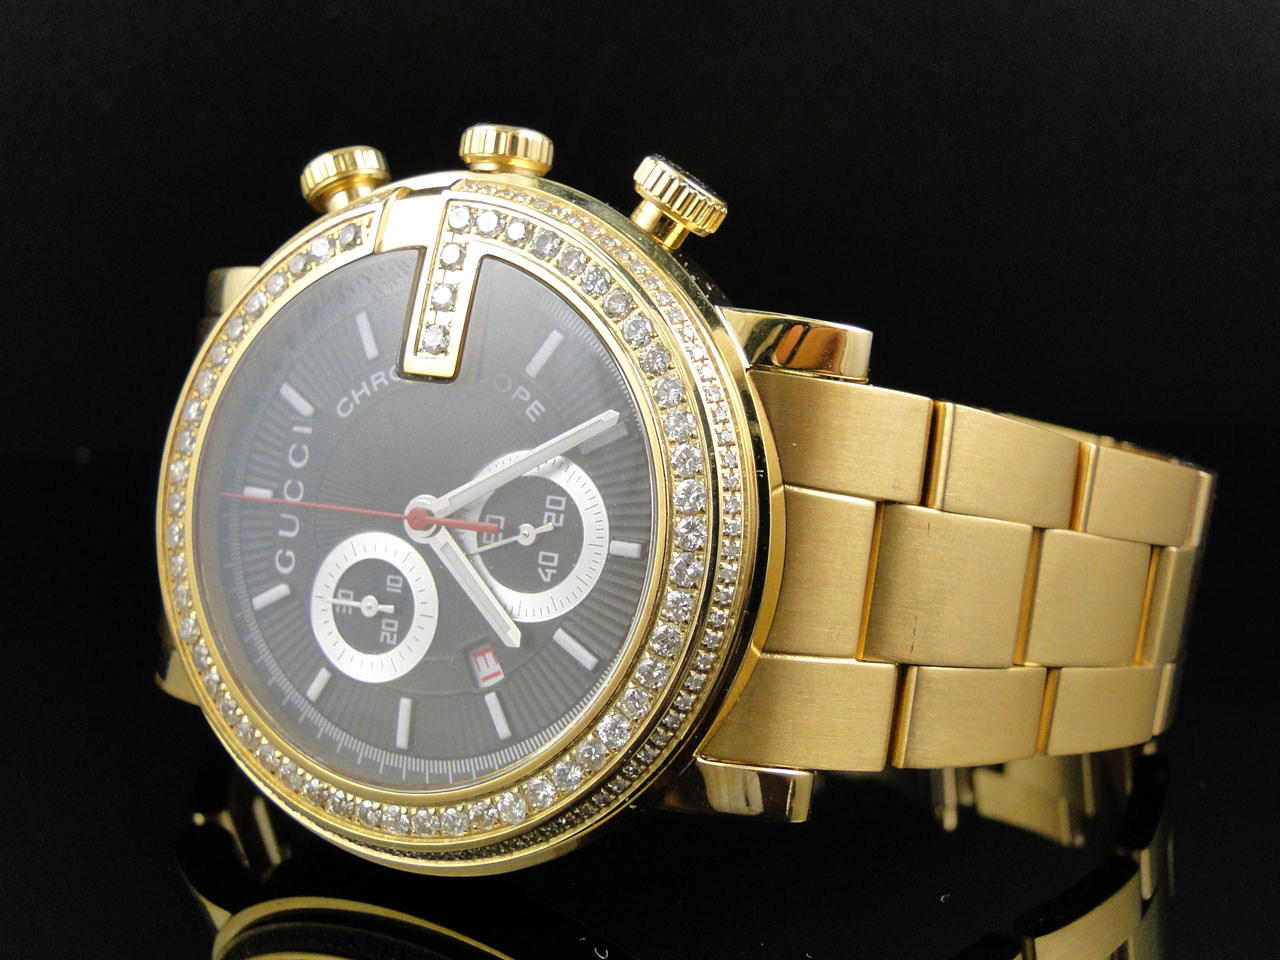 new custom mens 101 g gold pvd real 44 mm diamond gucci ya101334 new custom mens 101 g gold pvd real 44 mm diamond gucci ya101334 watch 3 25 ct